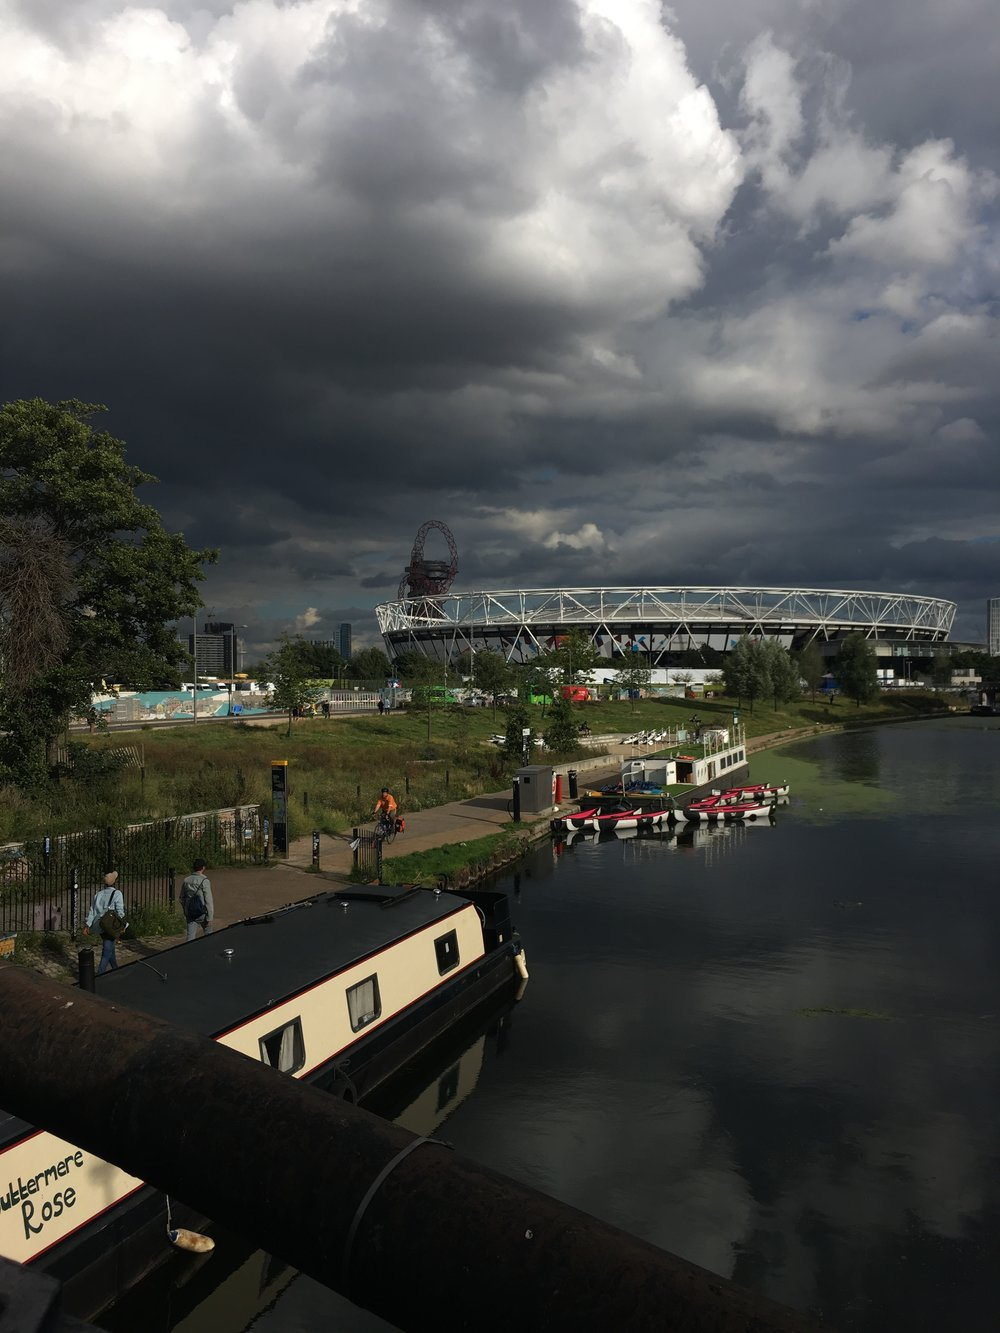 Moody sky over London Stadium but it didn't rain